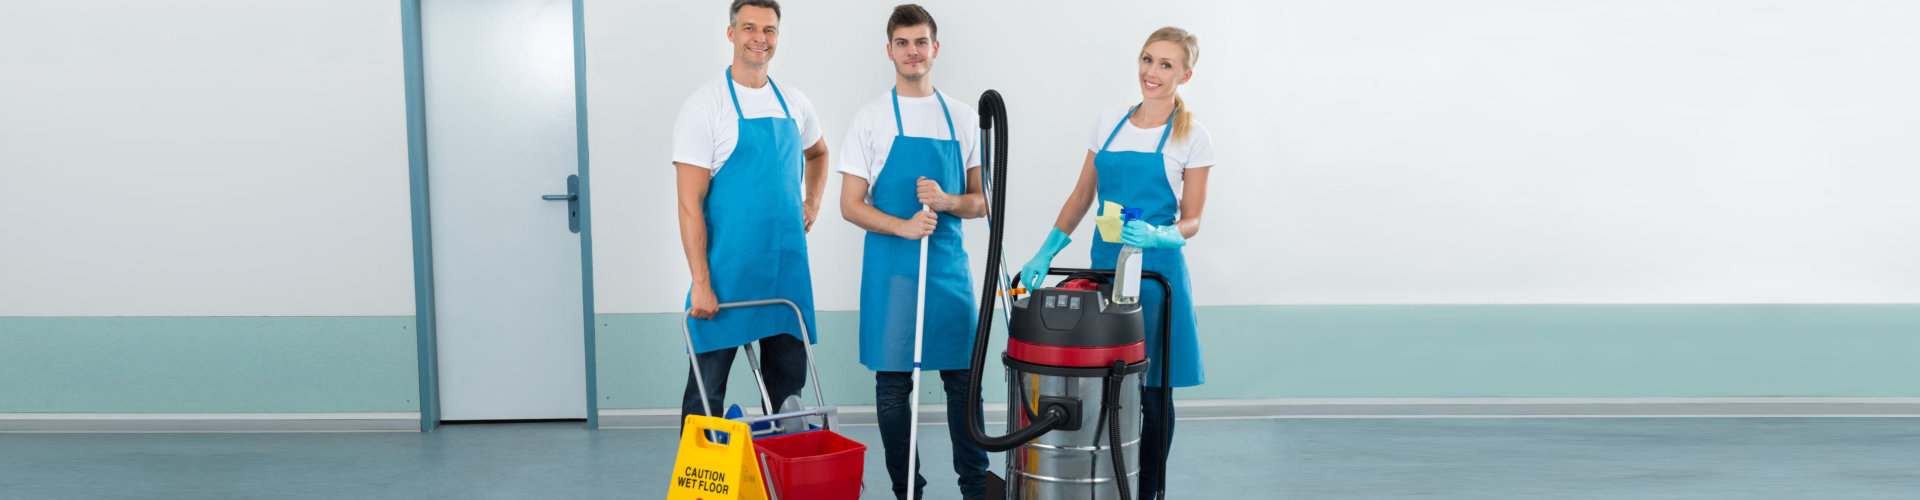 team of cleaners smiling